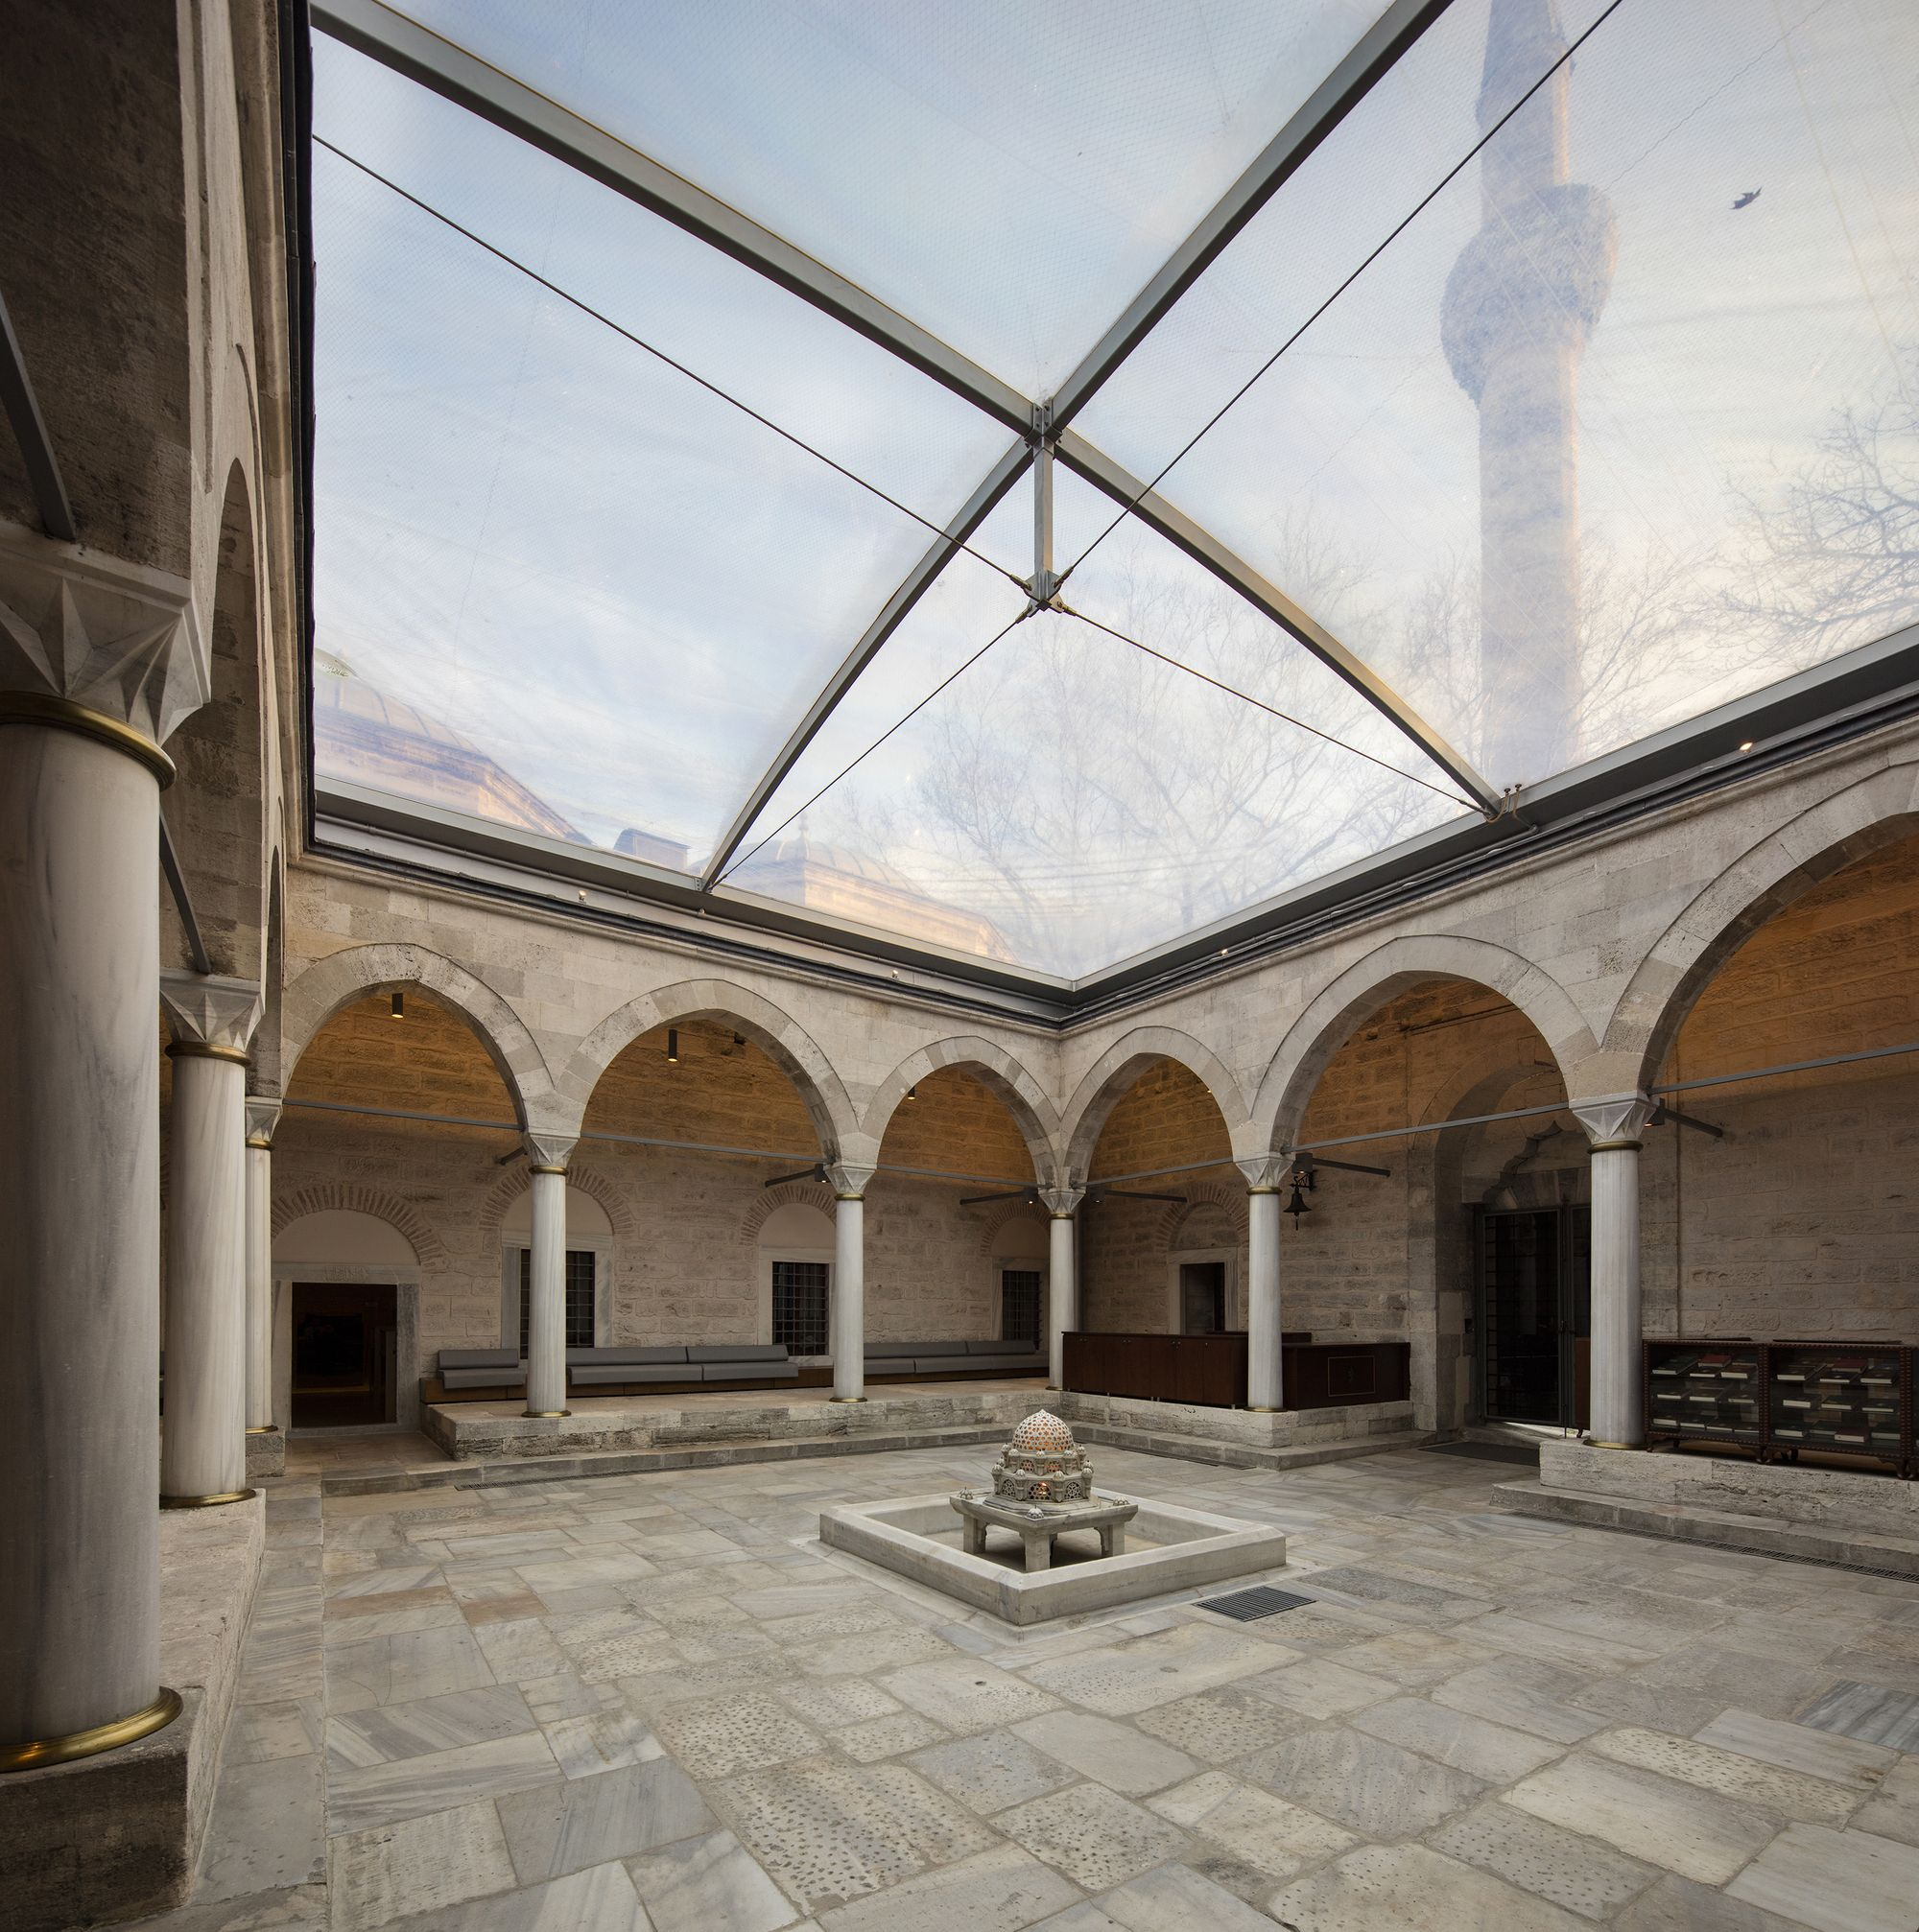 Gallery of Beyazıt State Library / Tabanlioglu Architects